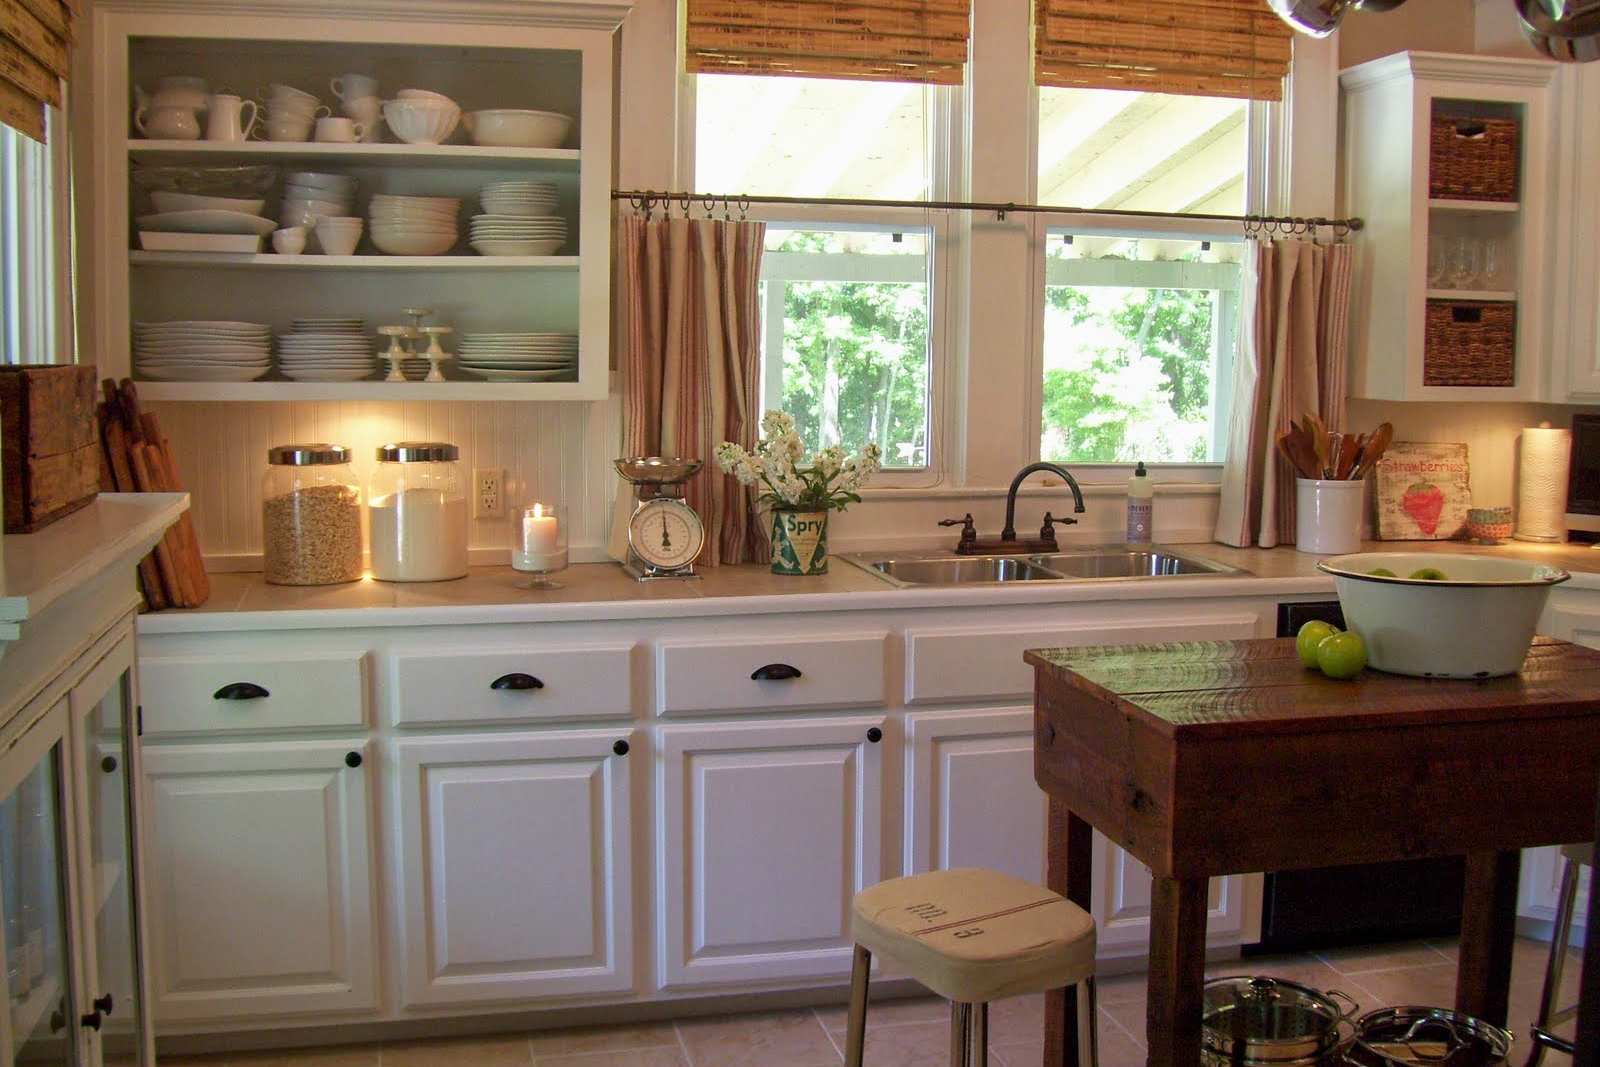 Remodel Kitchen Ideas | Diy Kitchen Remodel Budget Kitchen Remodel